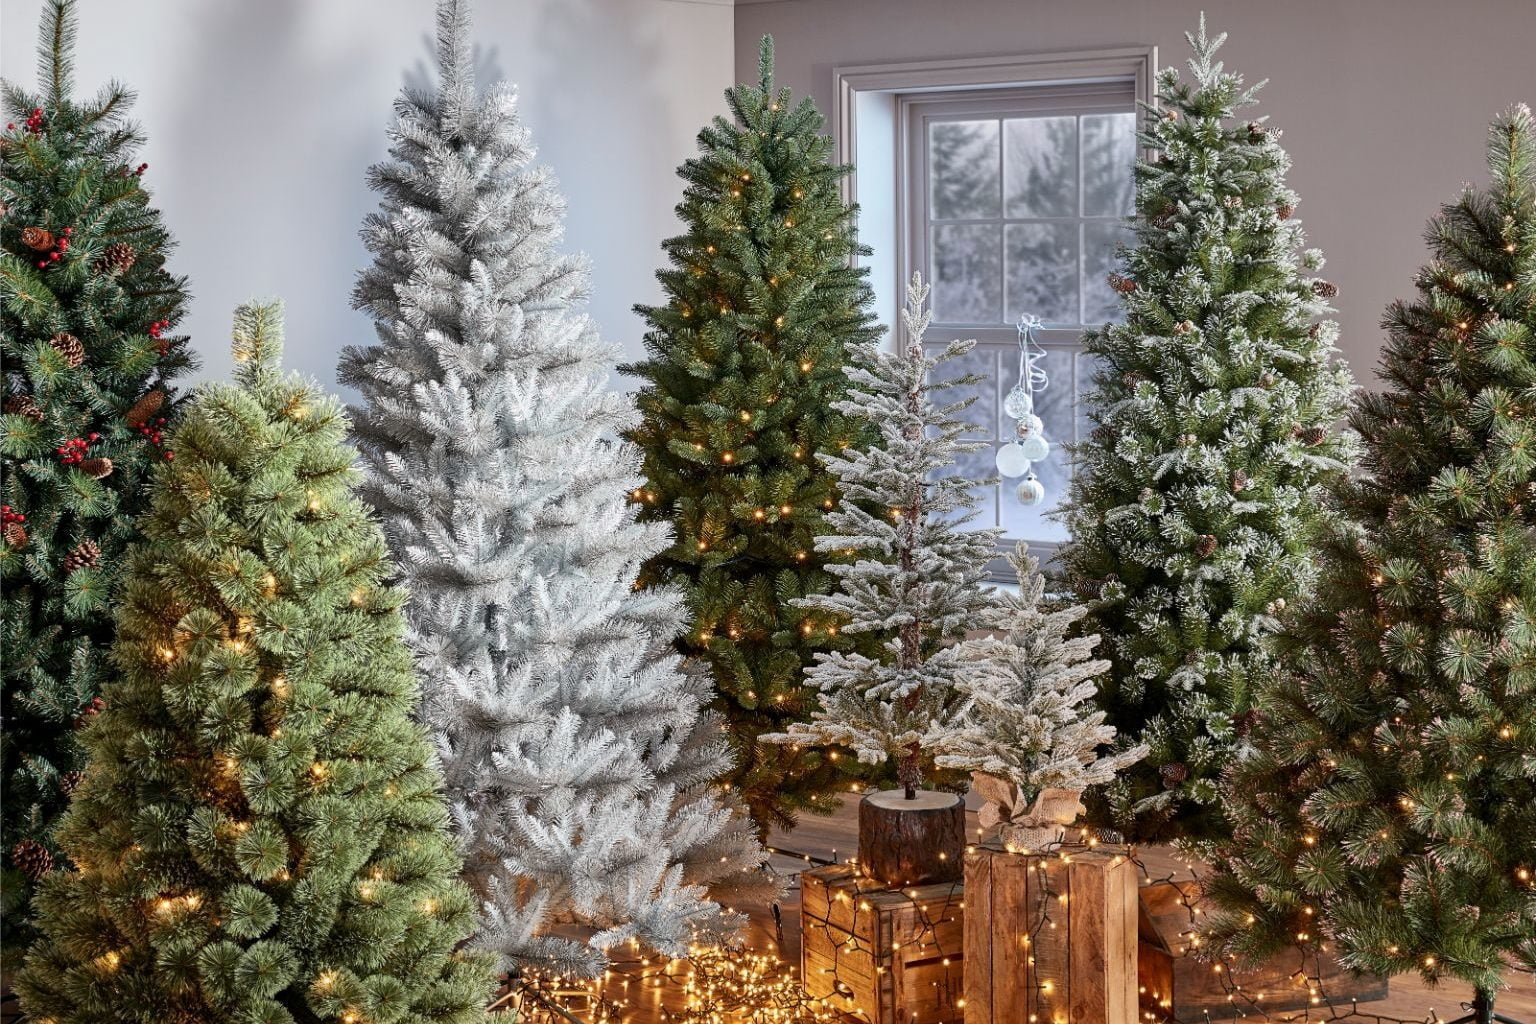 Most Realistic Artificial Christmas Trees 2019 | Top ...